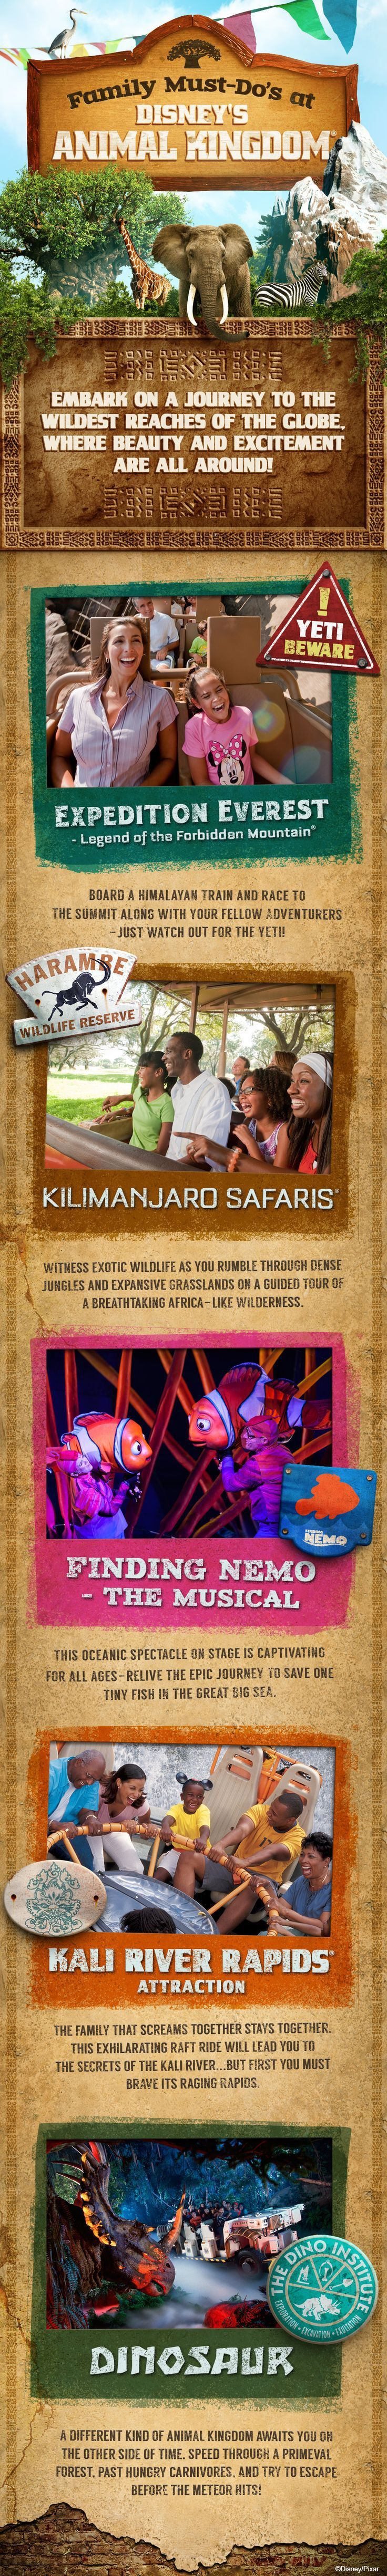 Start your expedition at the Walt Disney World Resort's wildest theme park with these Family Must Do's at Disney's Animal Kingdom. disney animal kingdom #disney